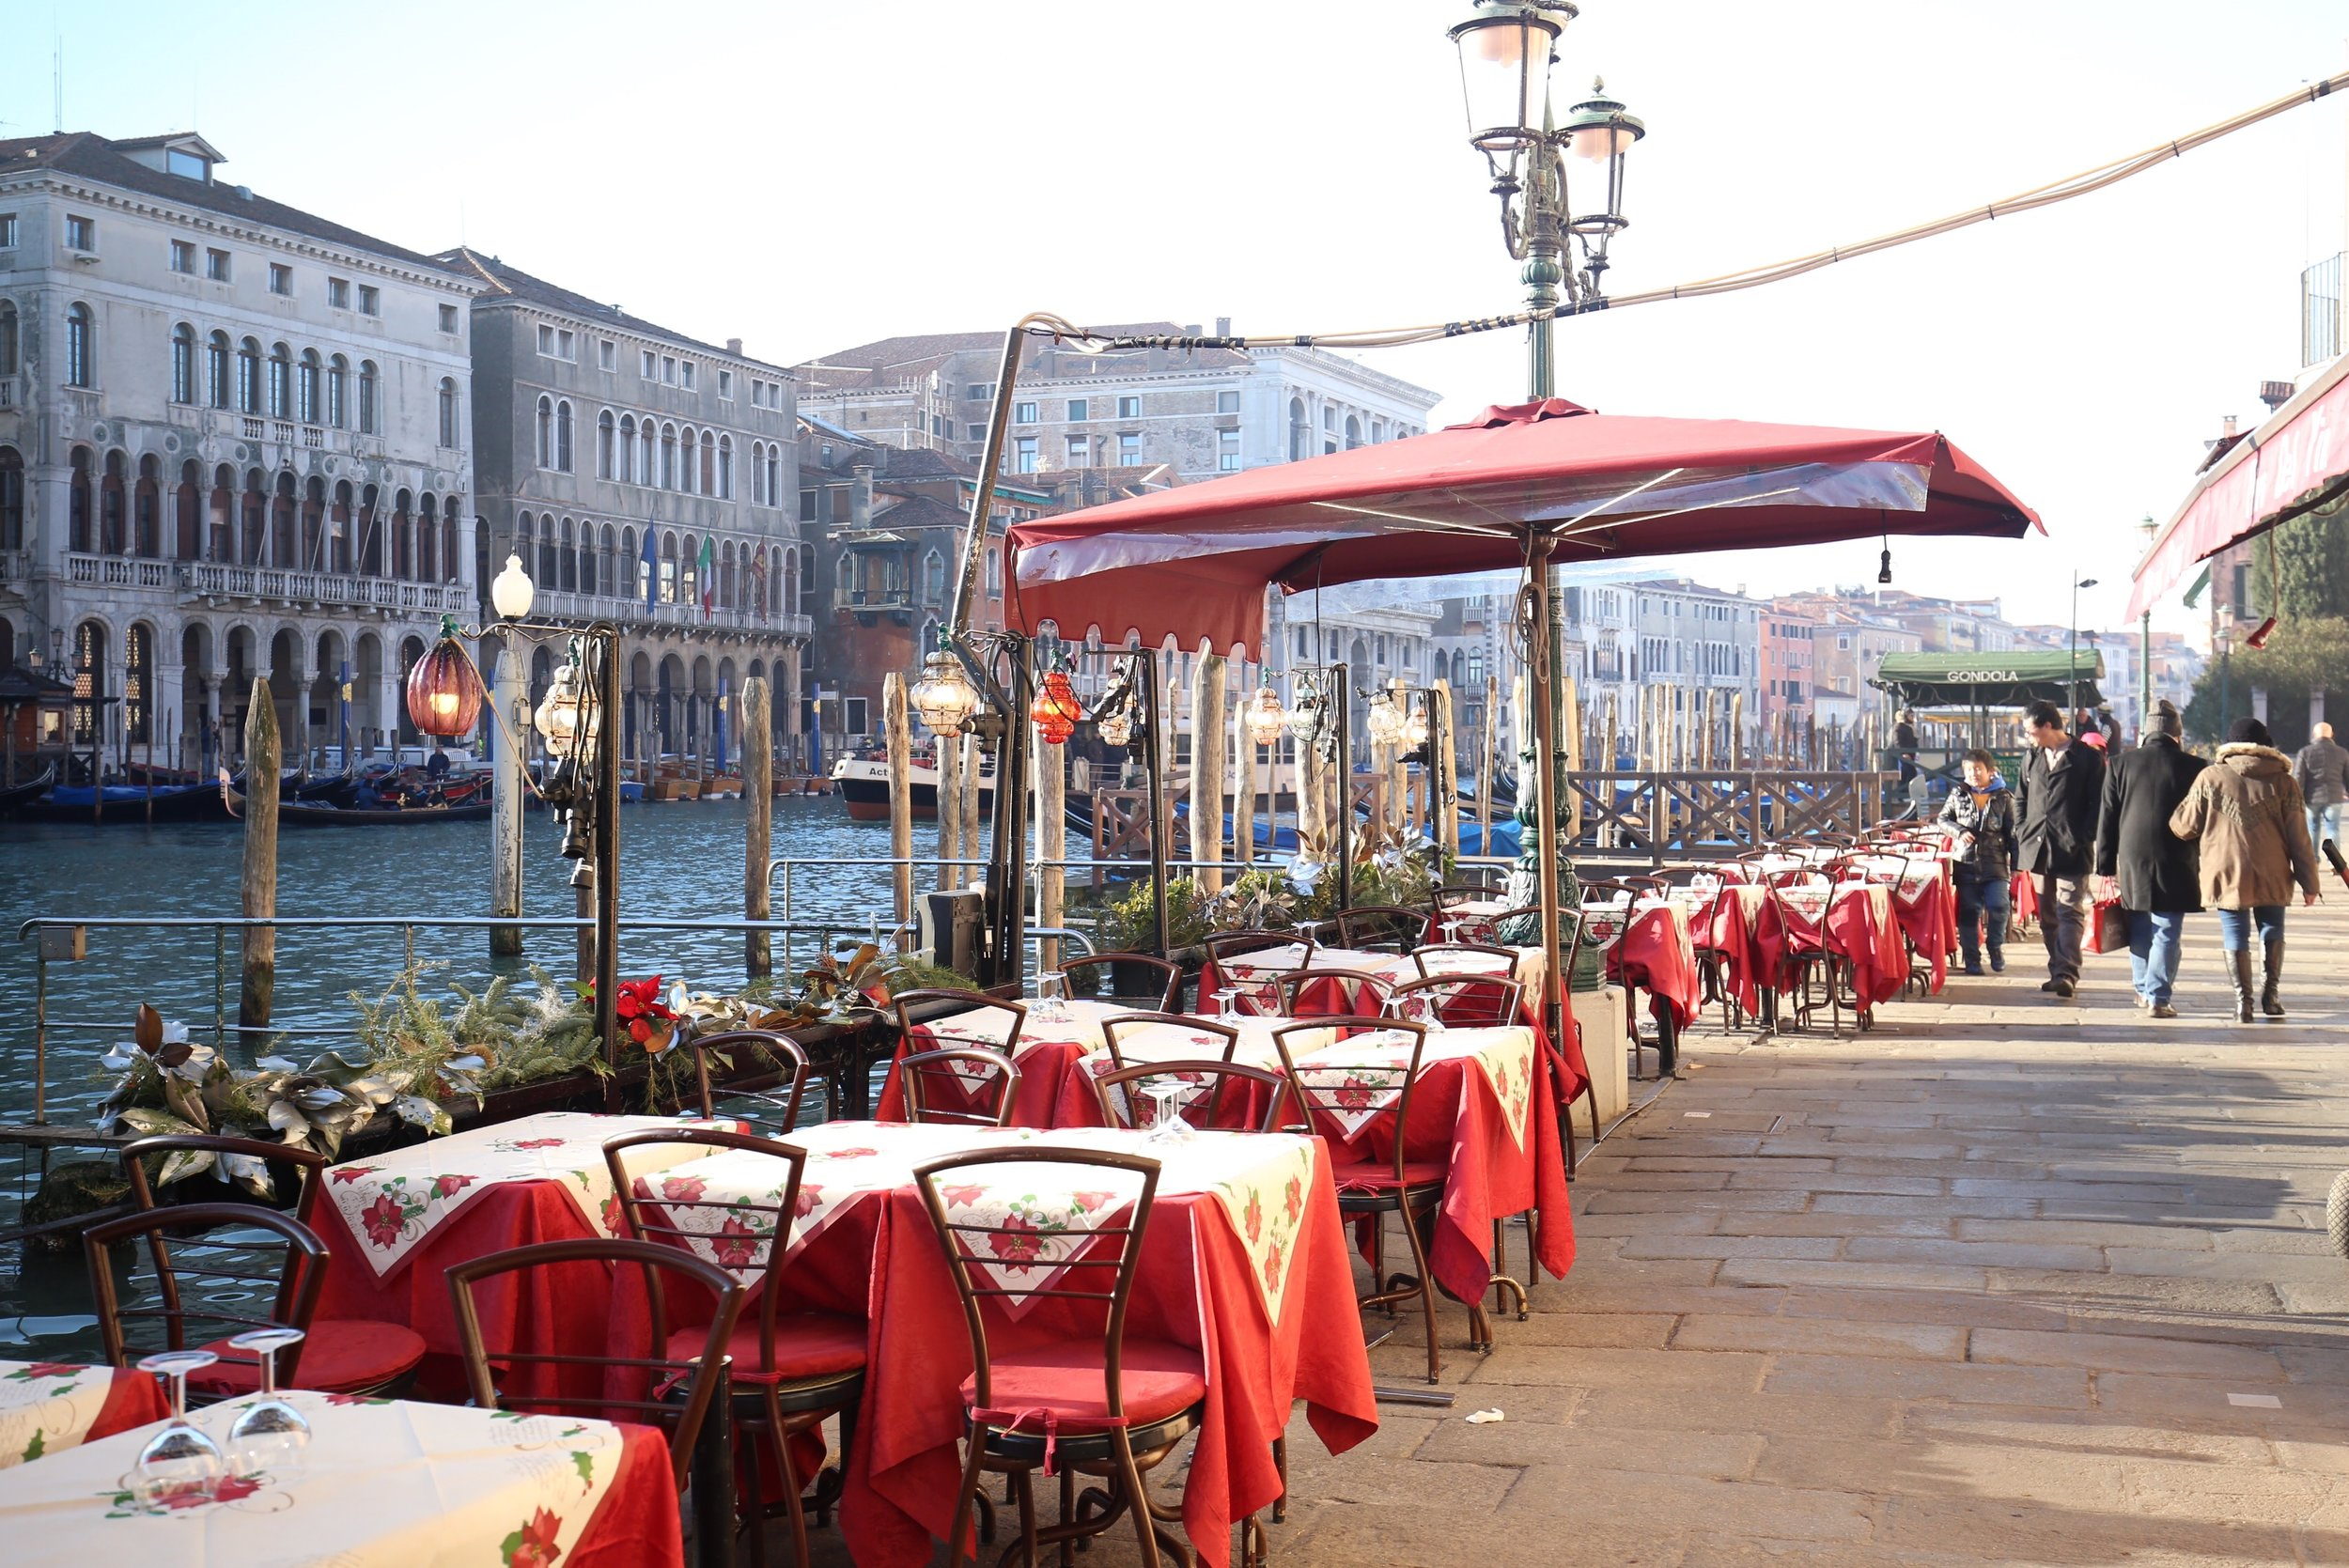 Tables and lanterns are set out by the Grand Canal - with red cloths on them.